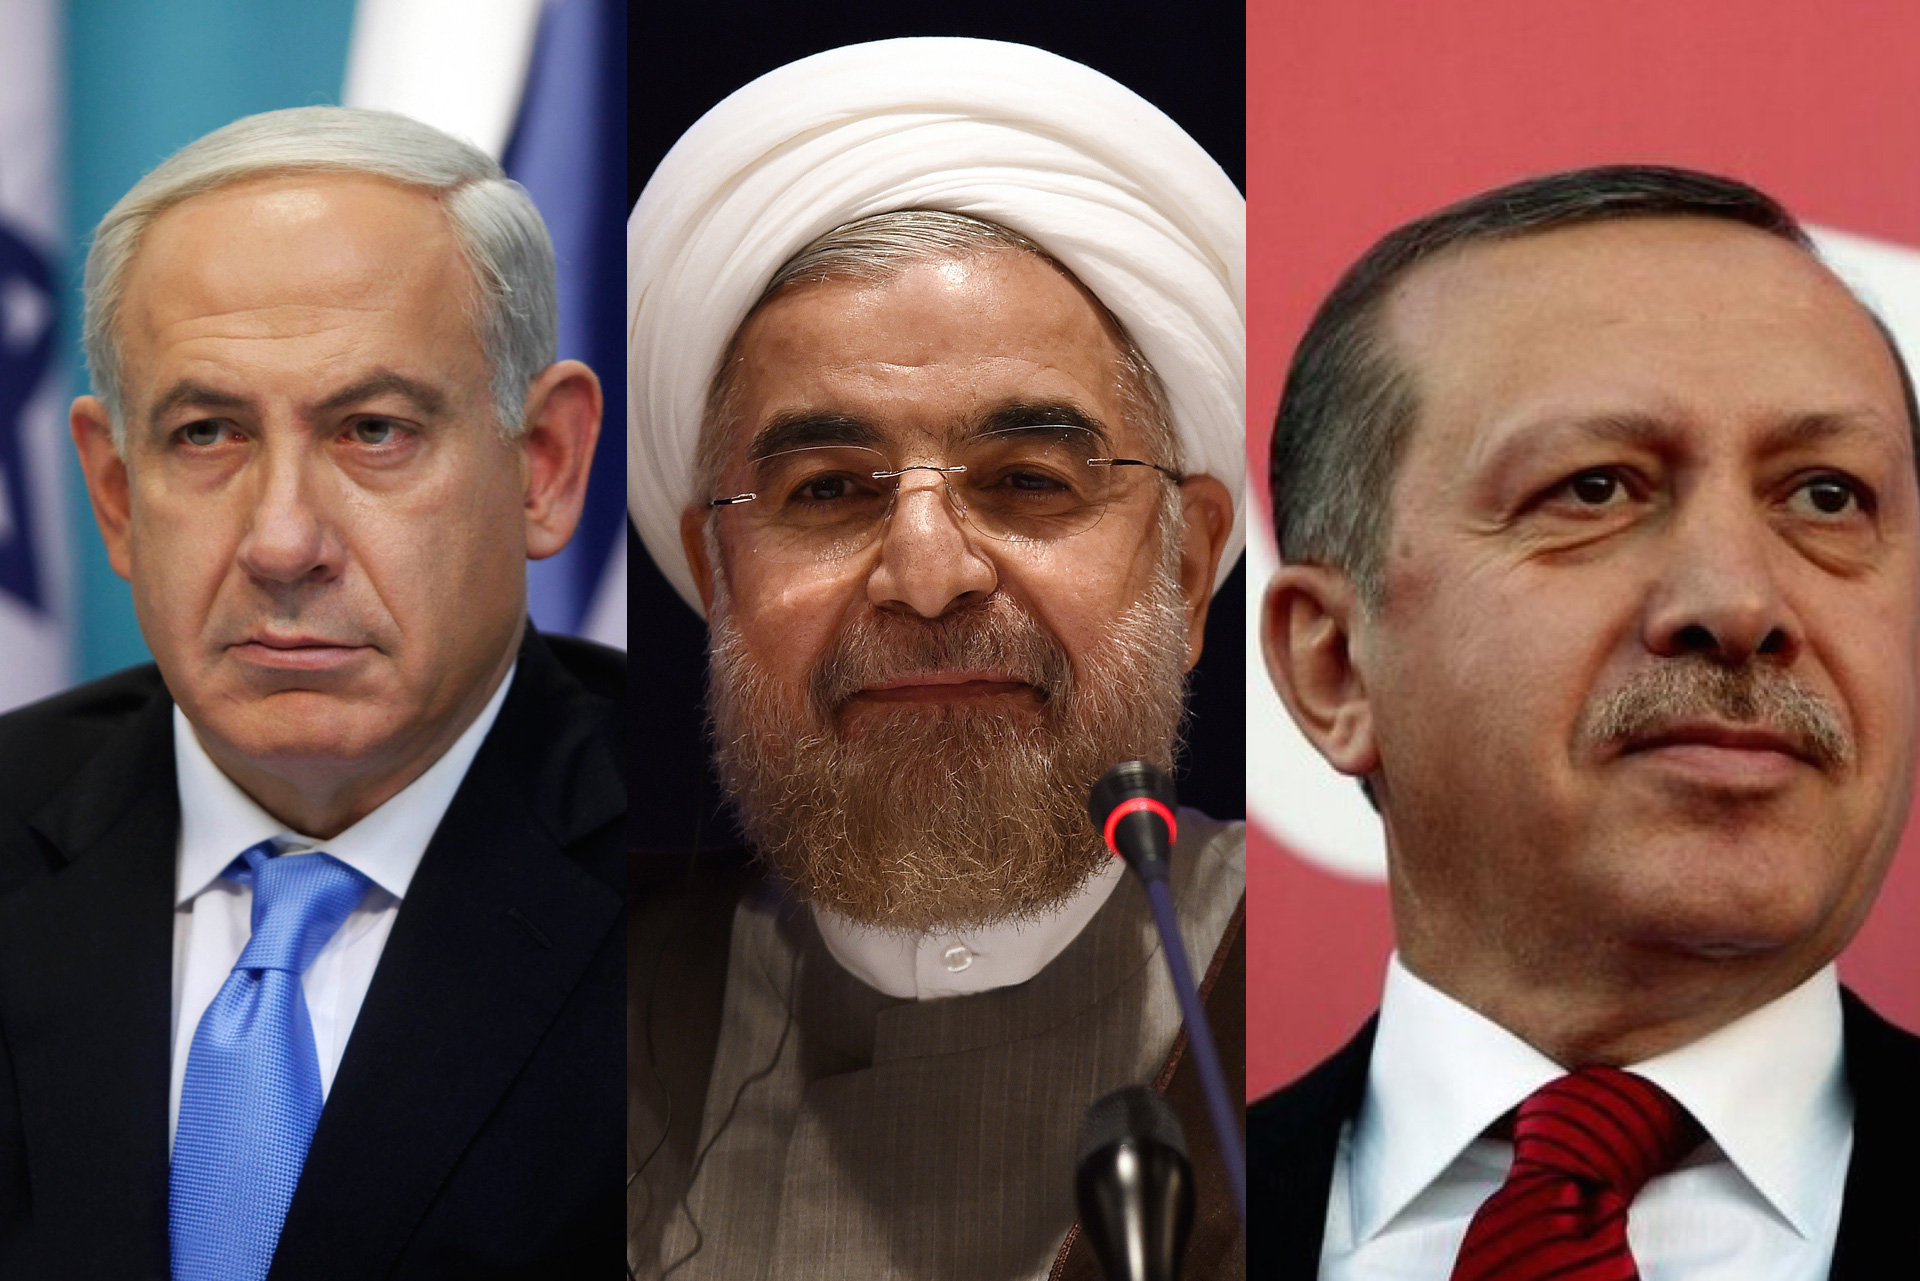 Israel's Prime Minster Benjamin Netanyahu (left), Iran's President Hassan Rouhani (middle) and Turkey's President Recep Tayyip Erdoğan (right) – @ MPC Journal.